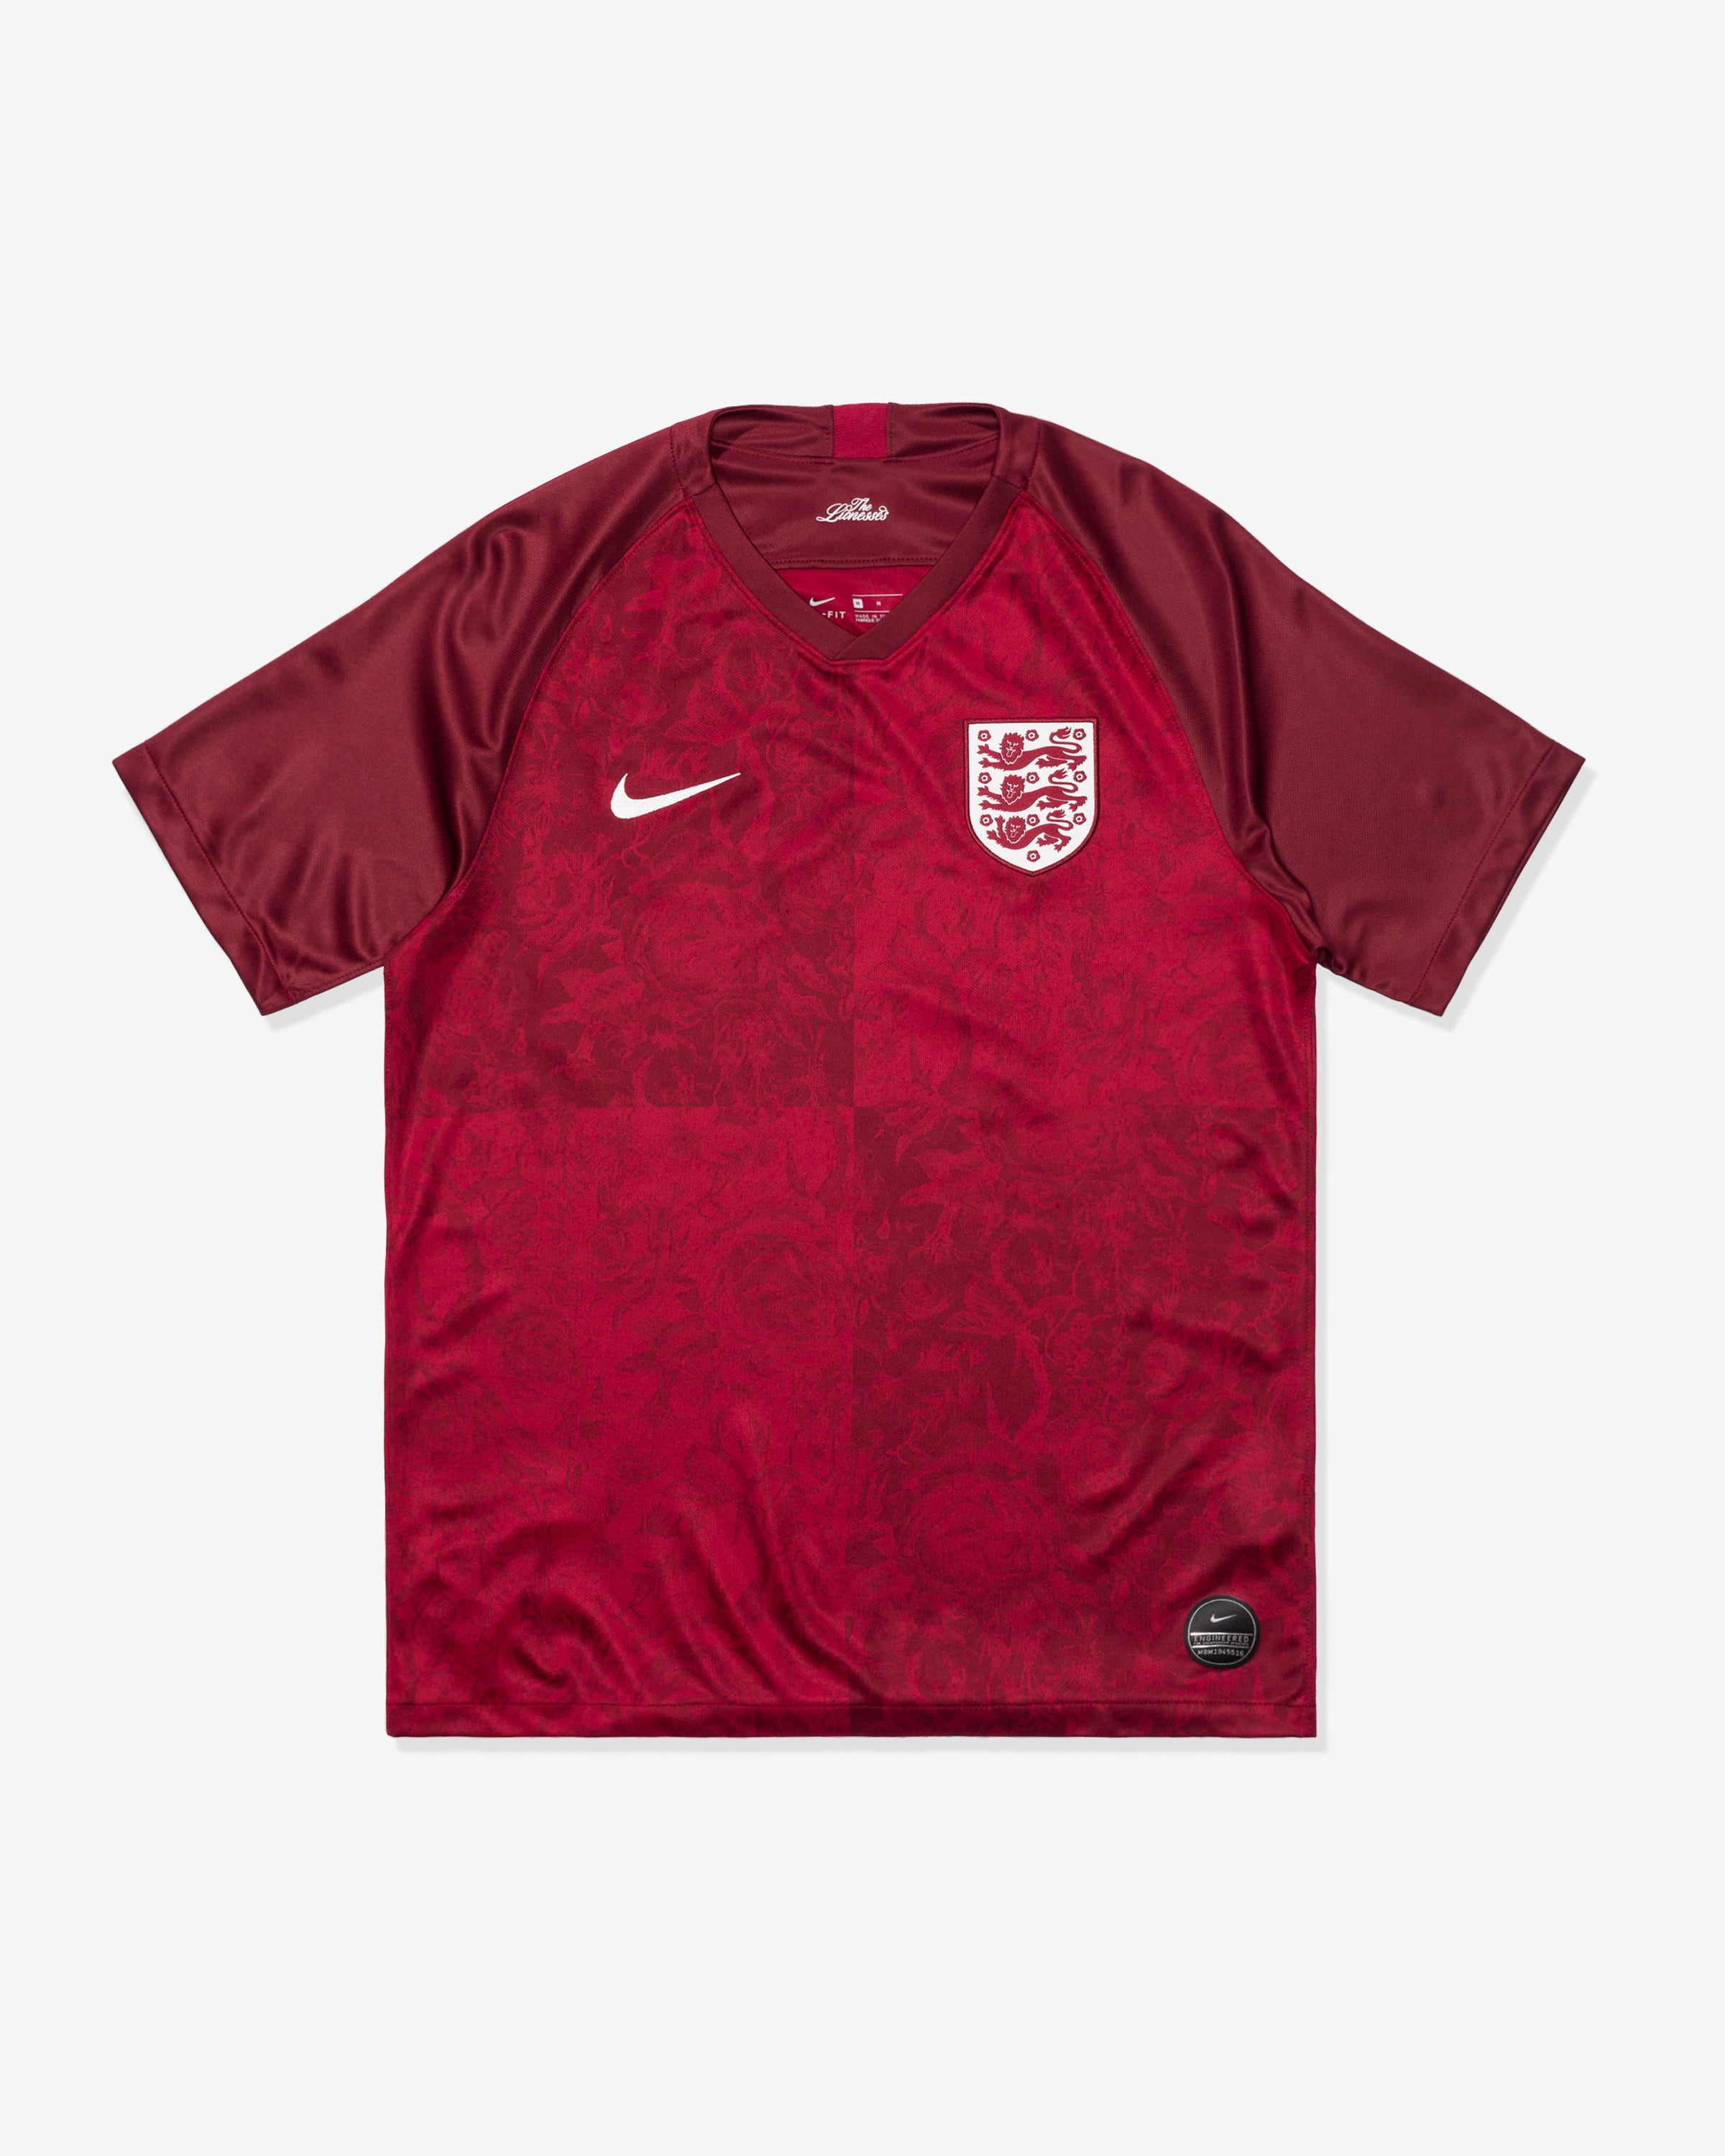 MEN'S ENGLAND 2019 STADIUM AWAY JERSEY - TEAMRED/PHANTOM